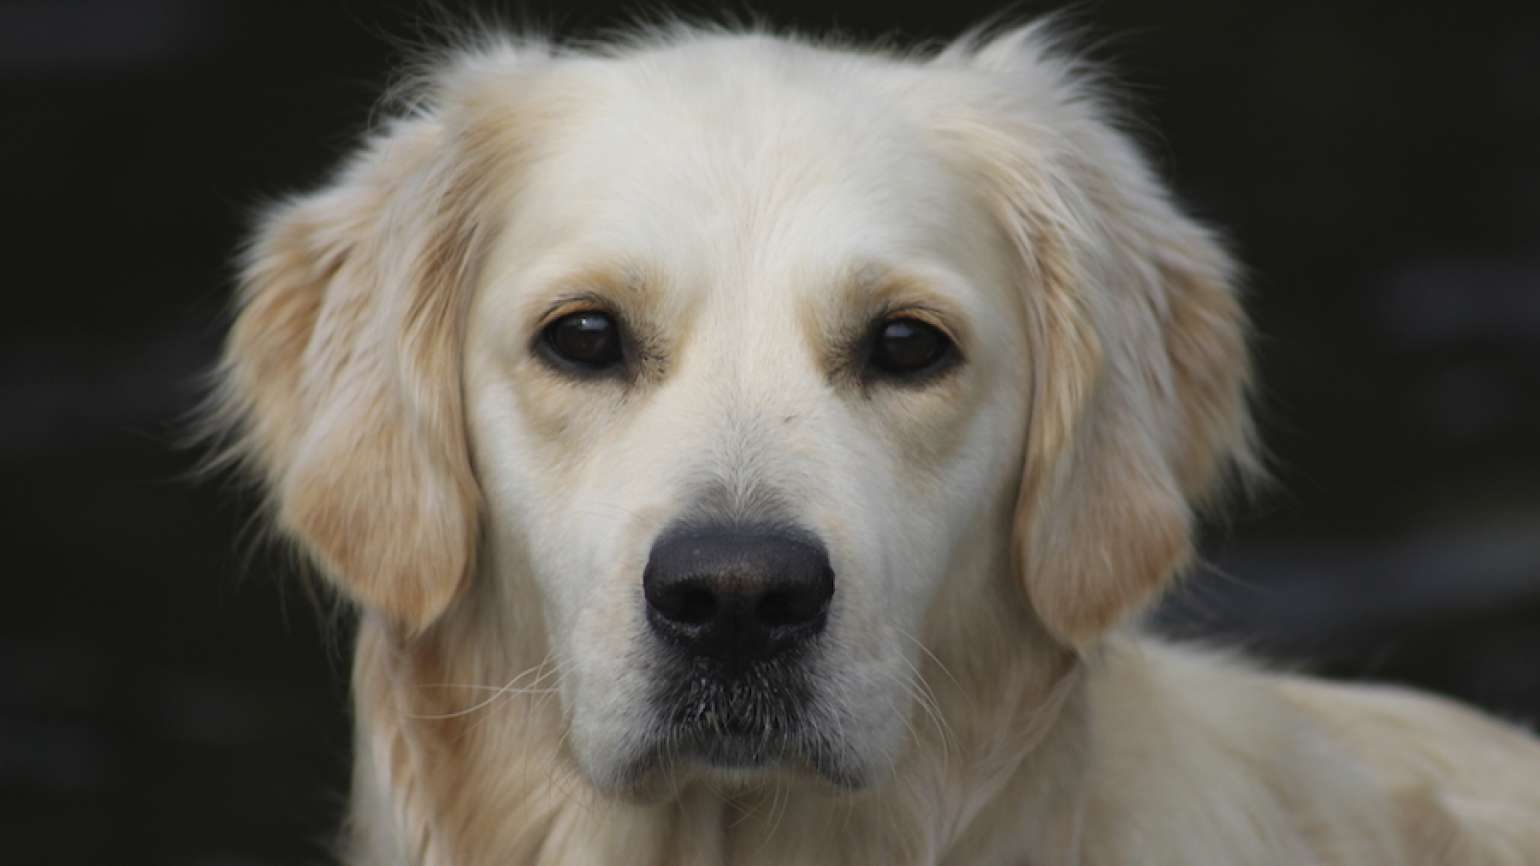 Portrait of a golden retriever. Dogs--what a gift from God!